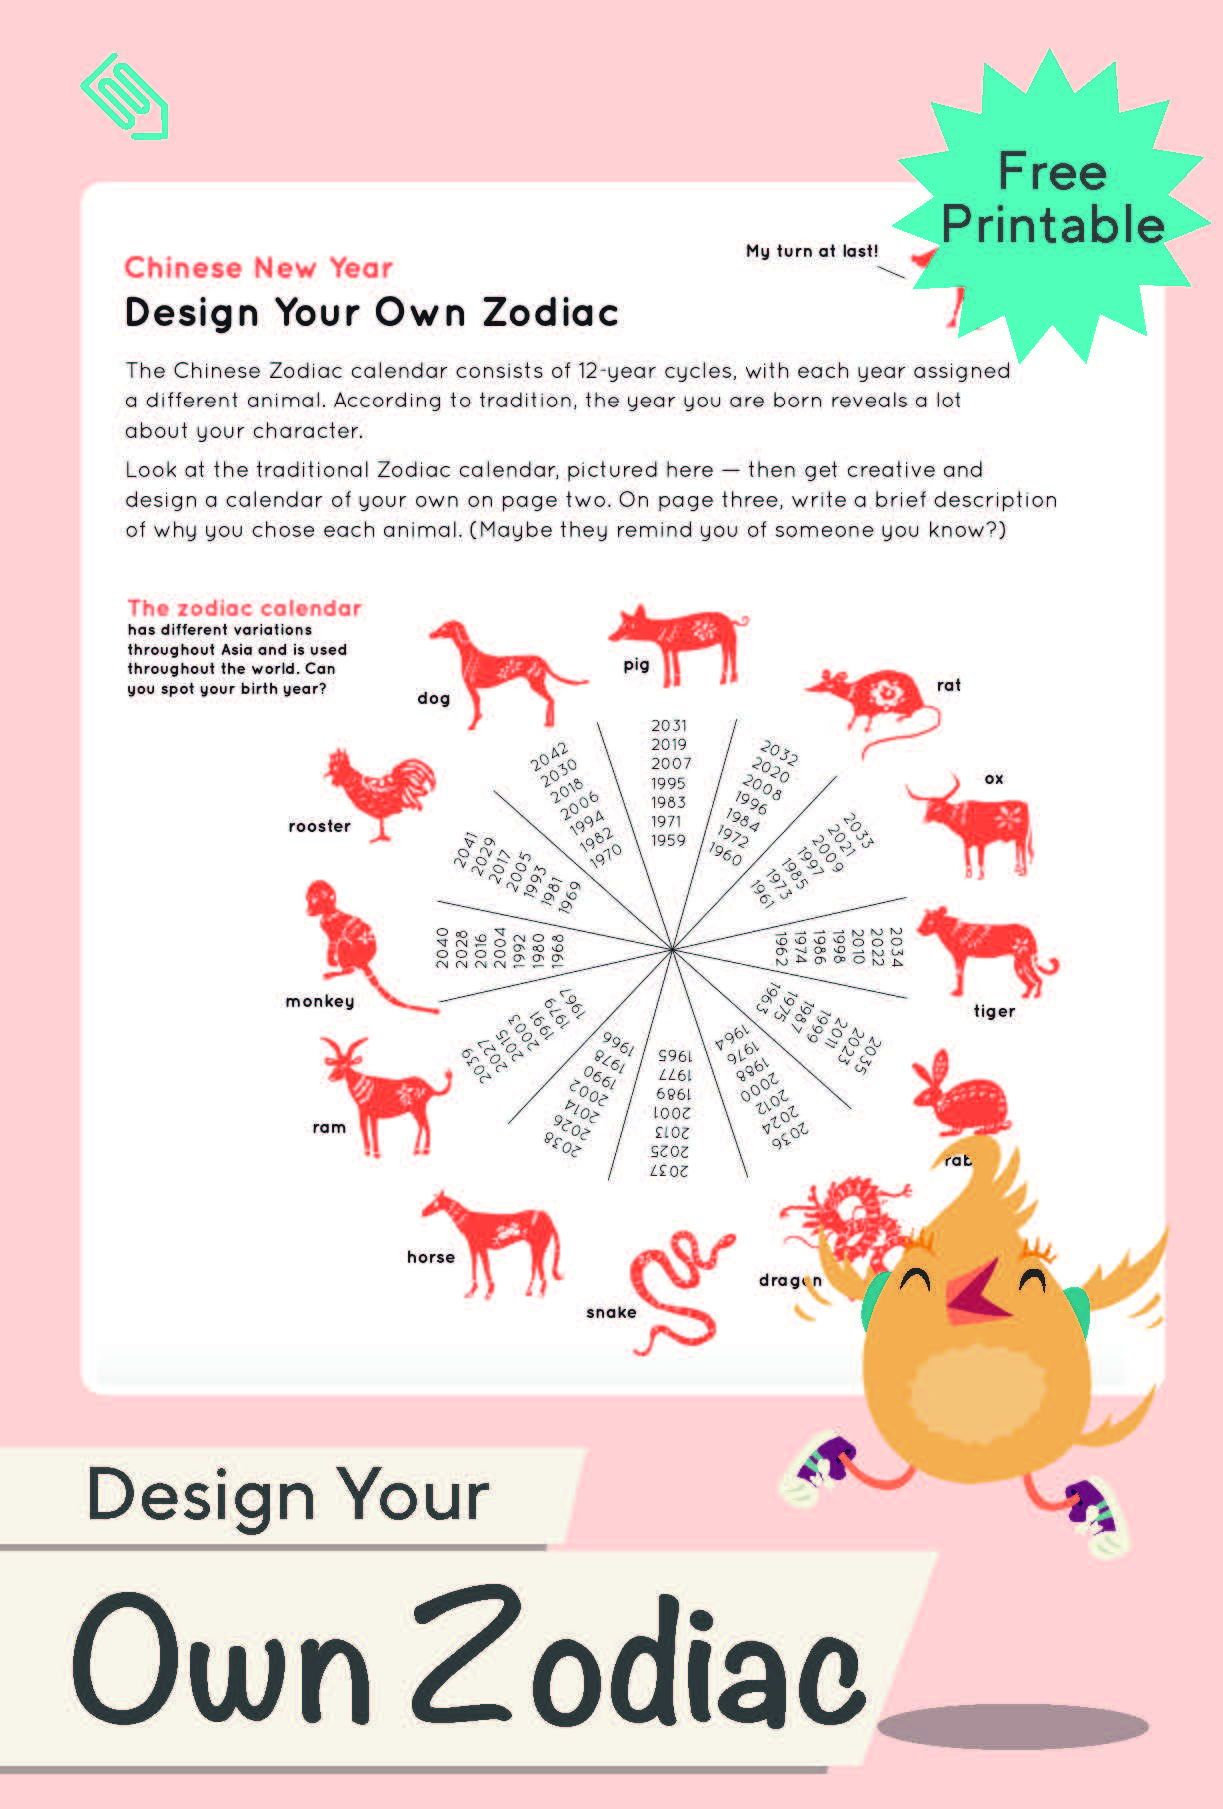 Design Your Own Zodiac